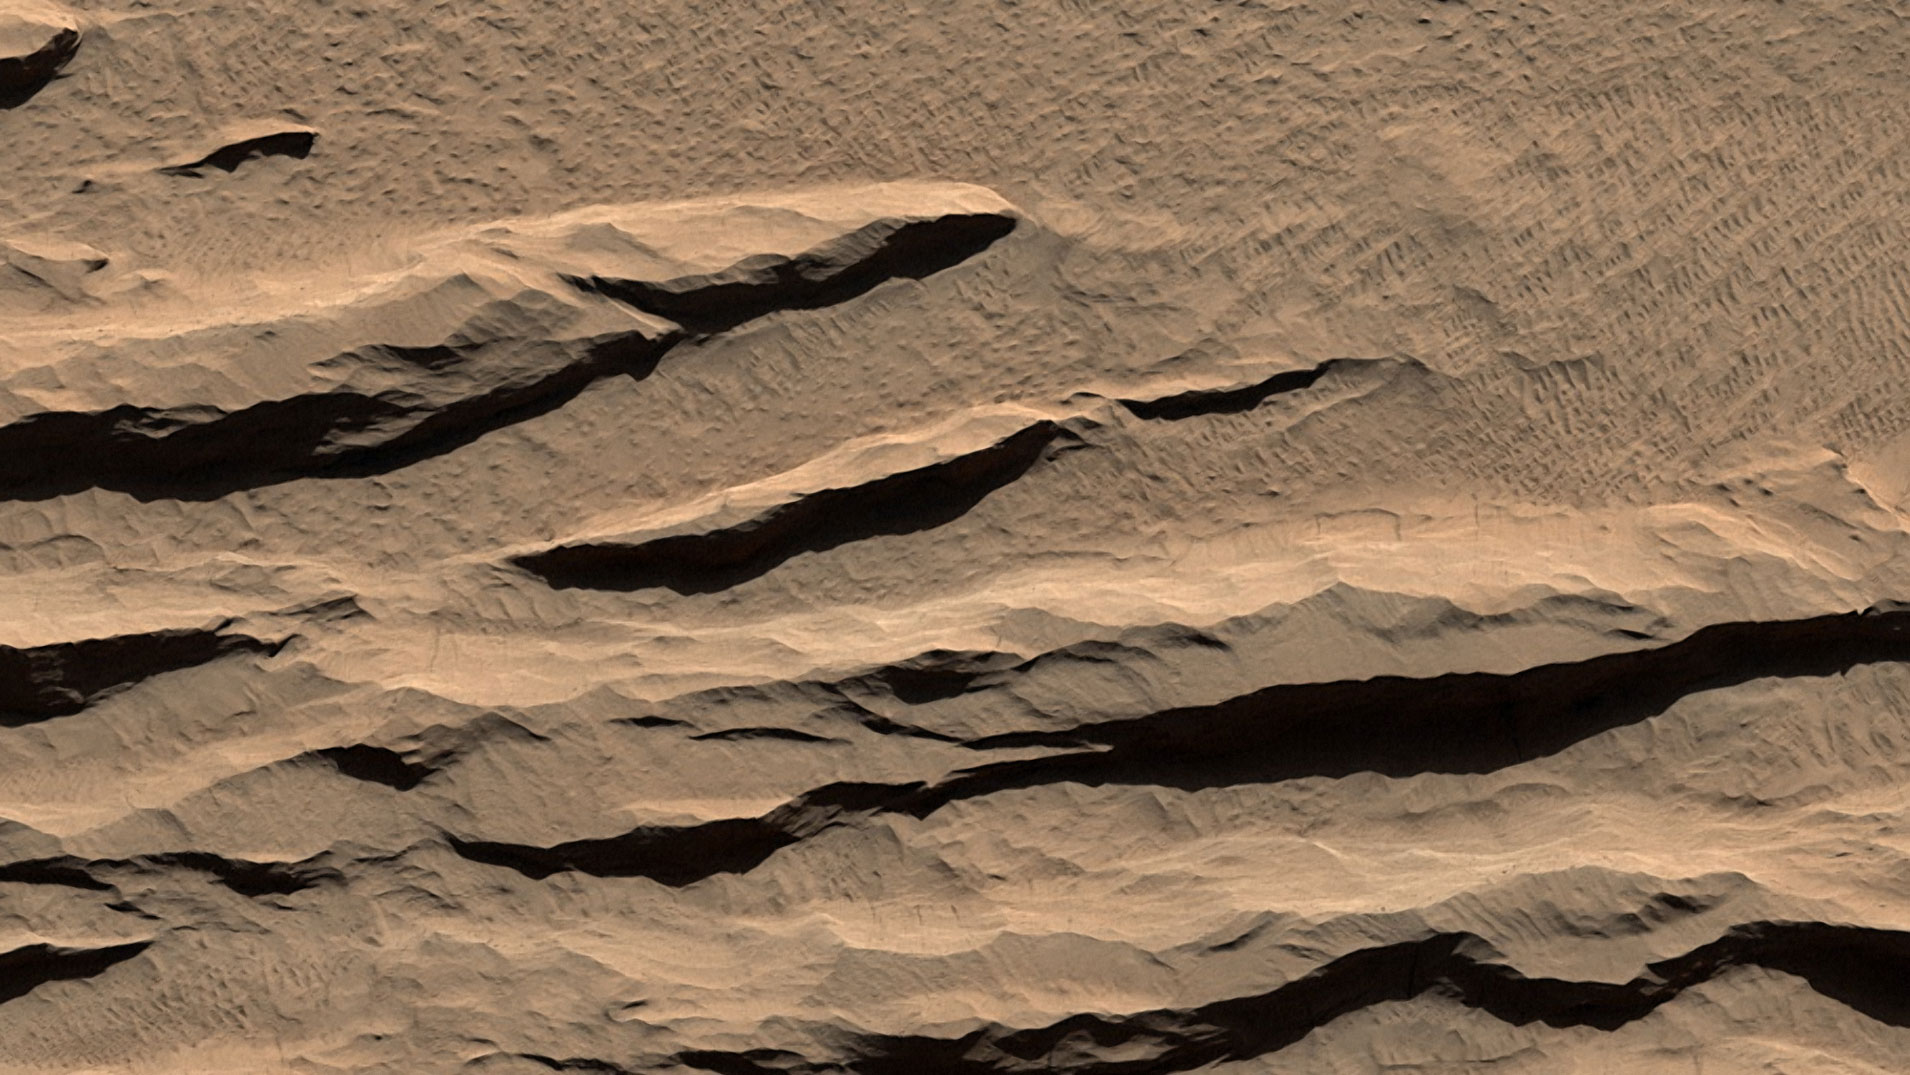 mars surface features - HD1910×1075